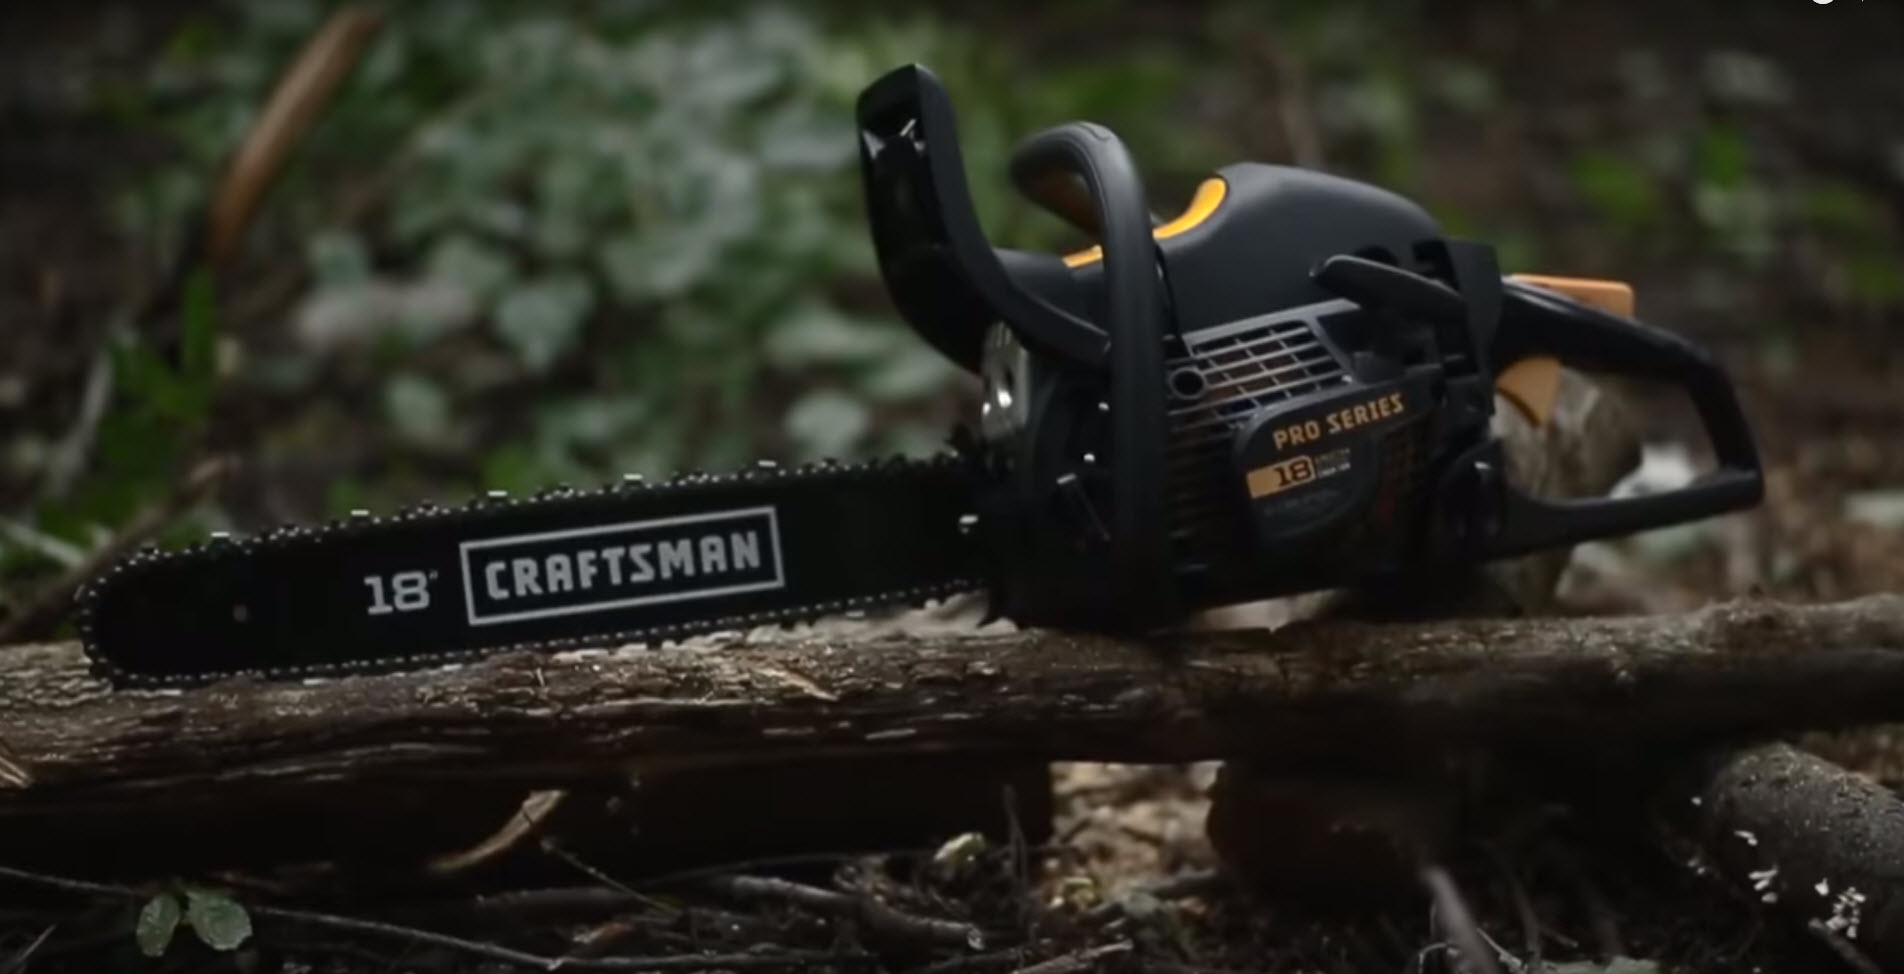 How to replace a chainsaw oil pump video | Chainsaw tips and